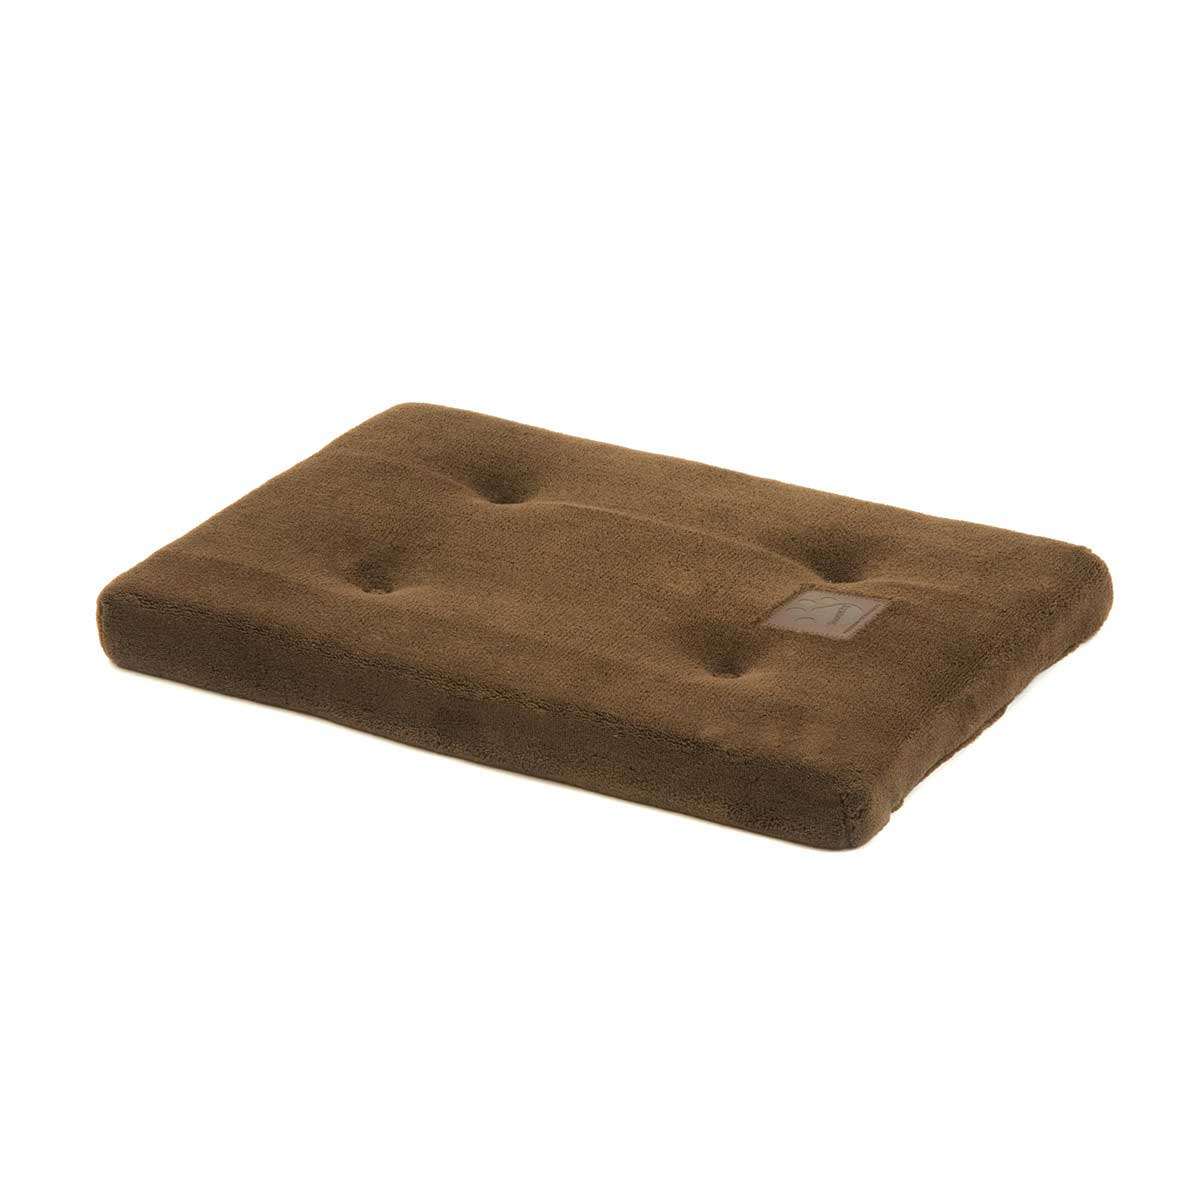 Snoozzy Chocolate Pet Mattress for Crates 34.75 inches by 21.5 inches